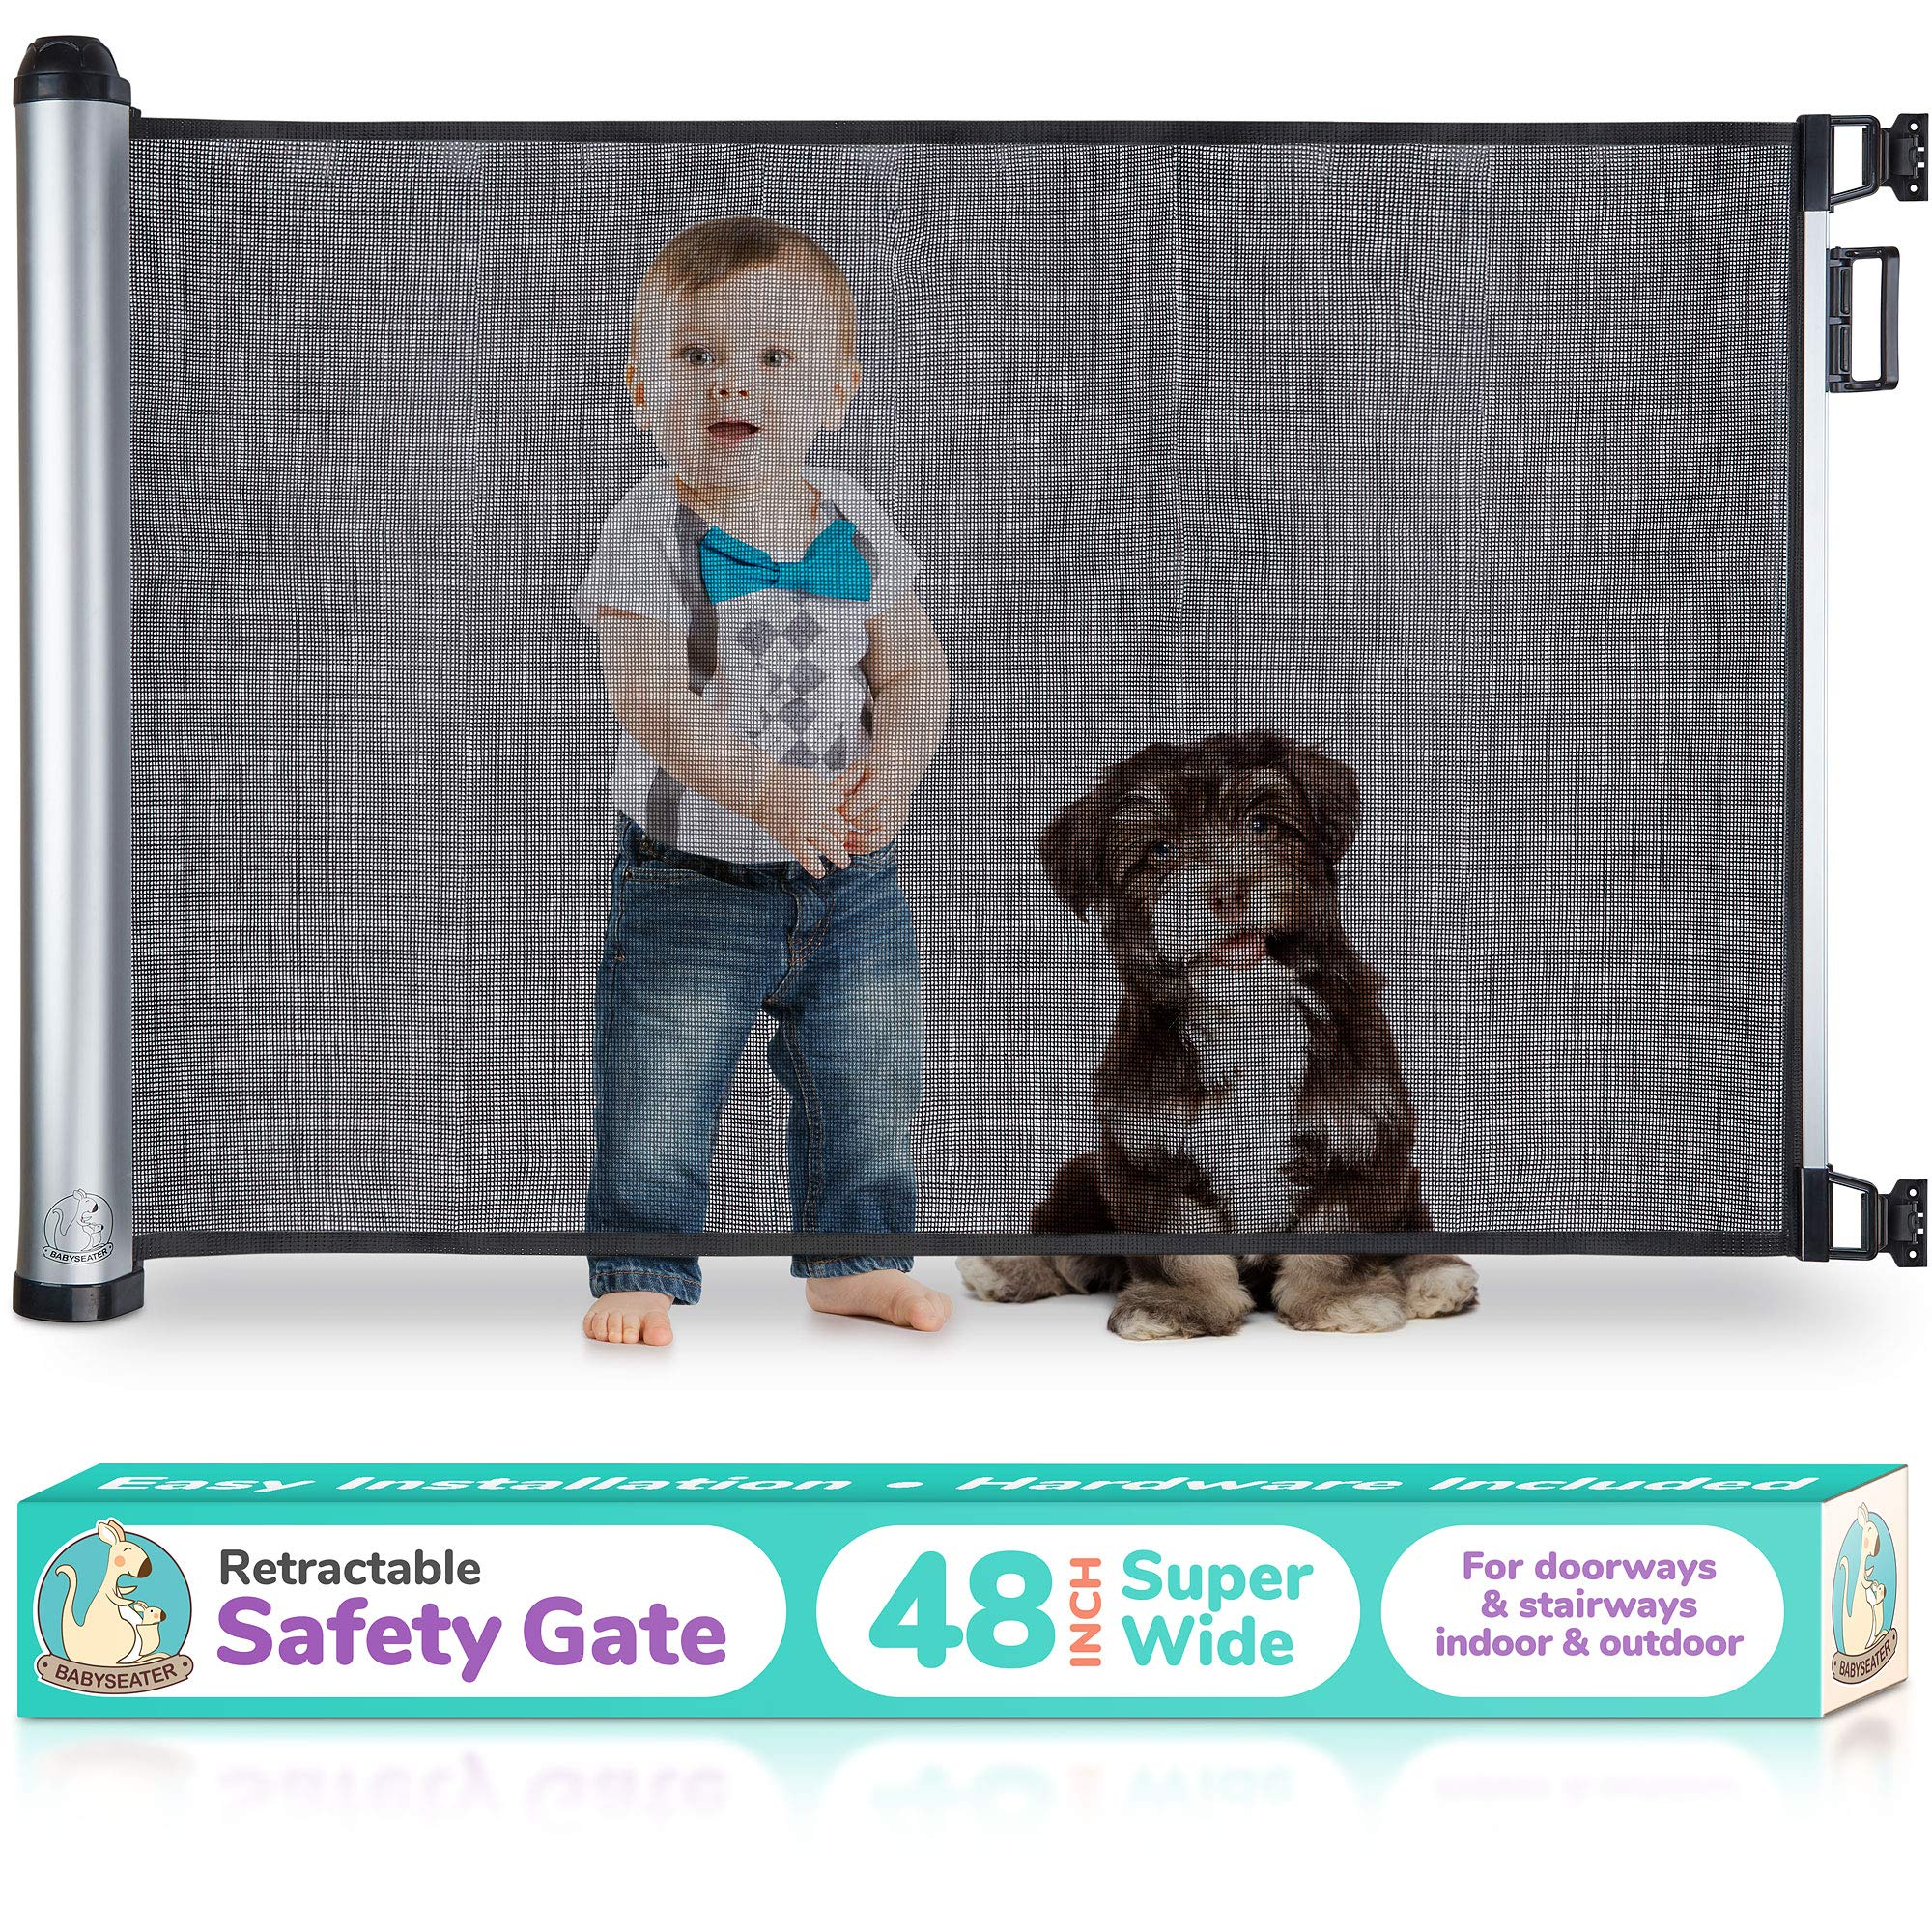 2019 New Retractable Baby Gate - Extra Wide Baby Safety Gate and Pet Gate for Stairs, Doors, and More - Mesh Baby Gate with Easy Latch and Flexible Design Fits Most Spaces by BABYSEATER